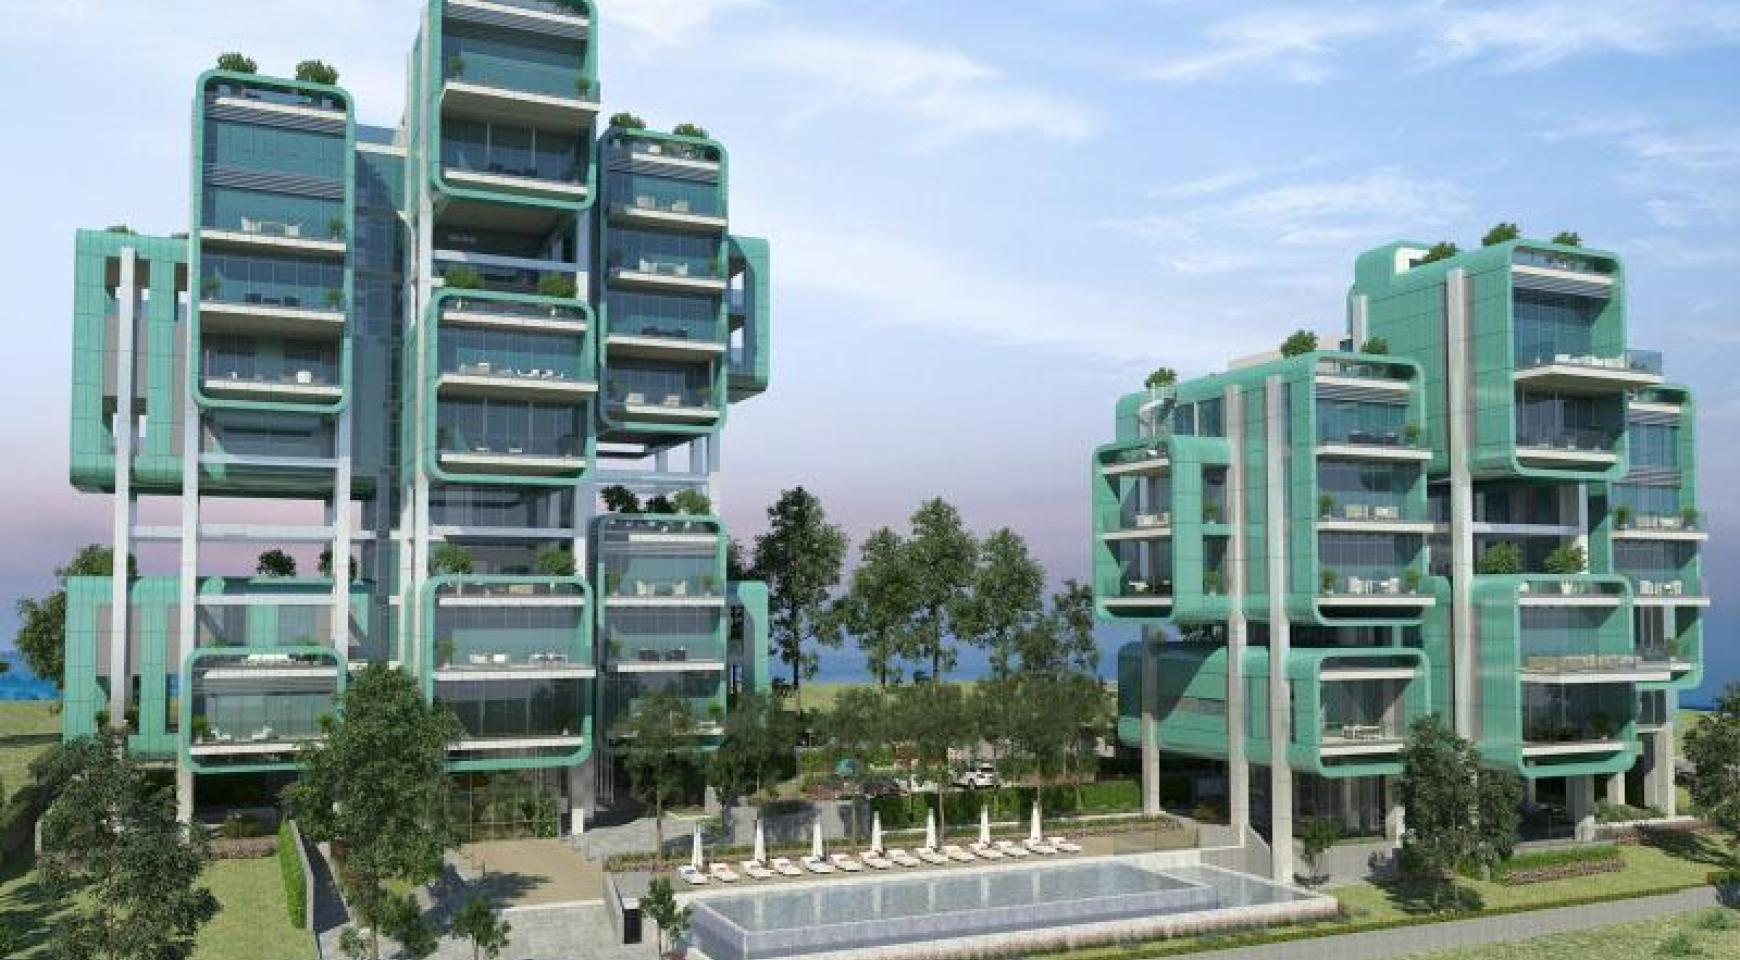 Luxurious 3 Bedroom Apartment within a New Complex near the Sea - 24